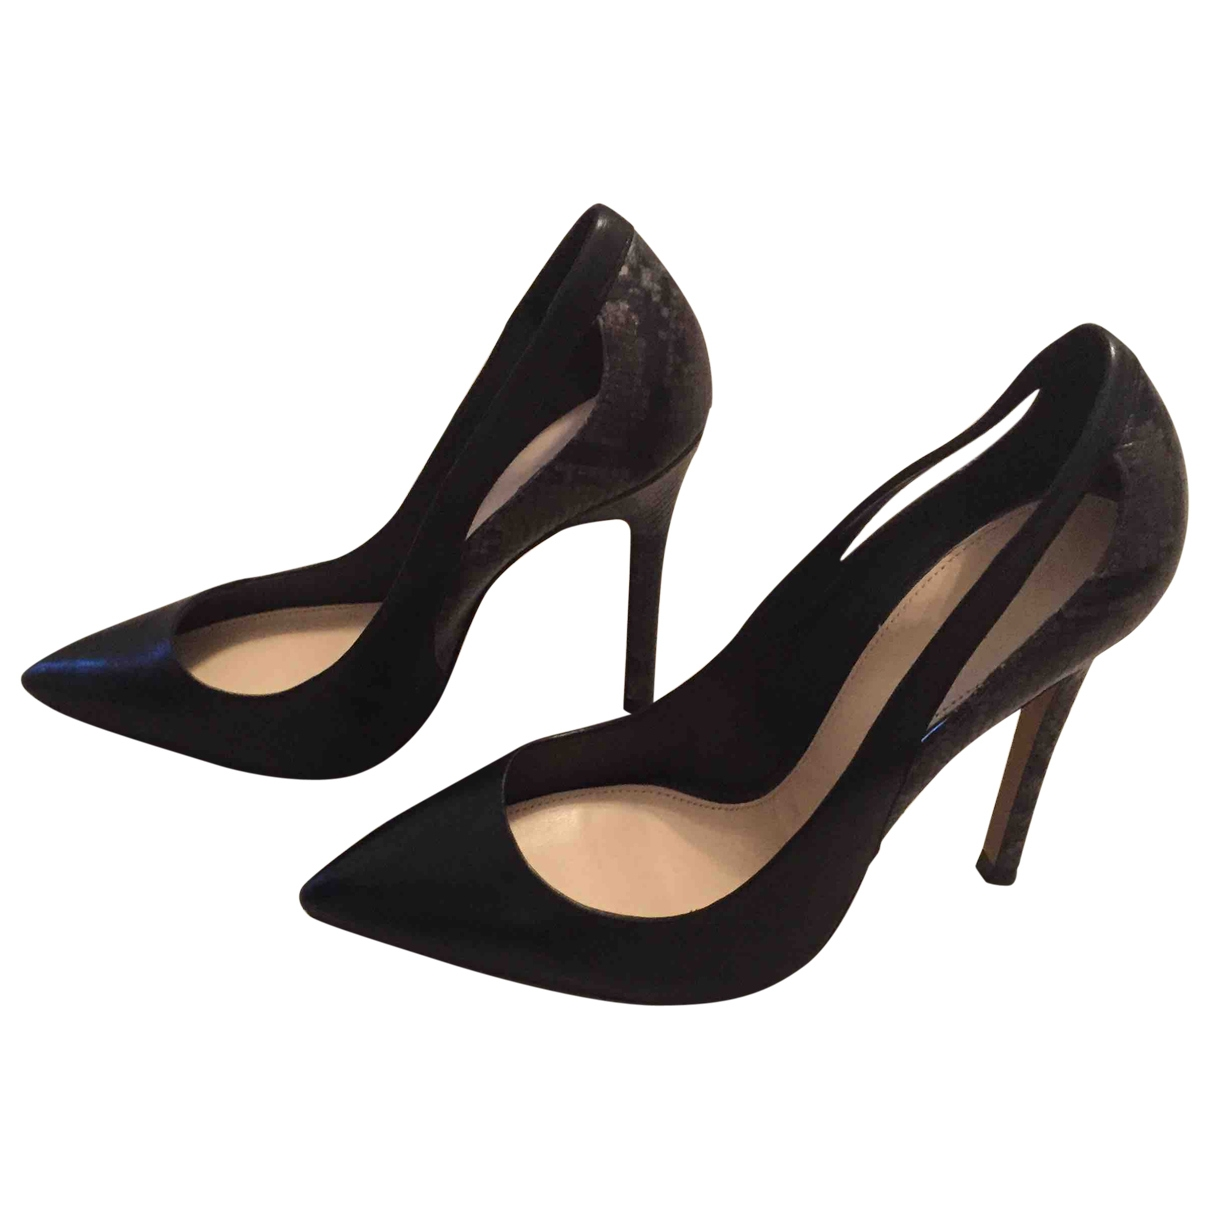 Zara \N Black Leather Heels for Women 40 EU